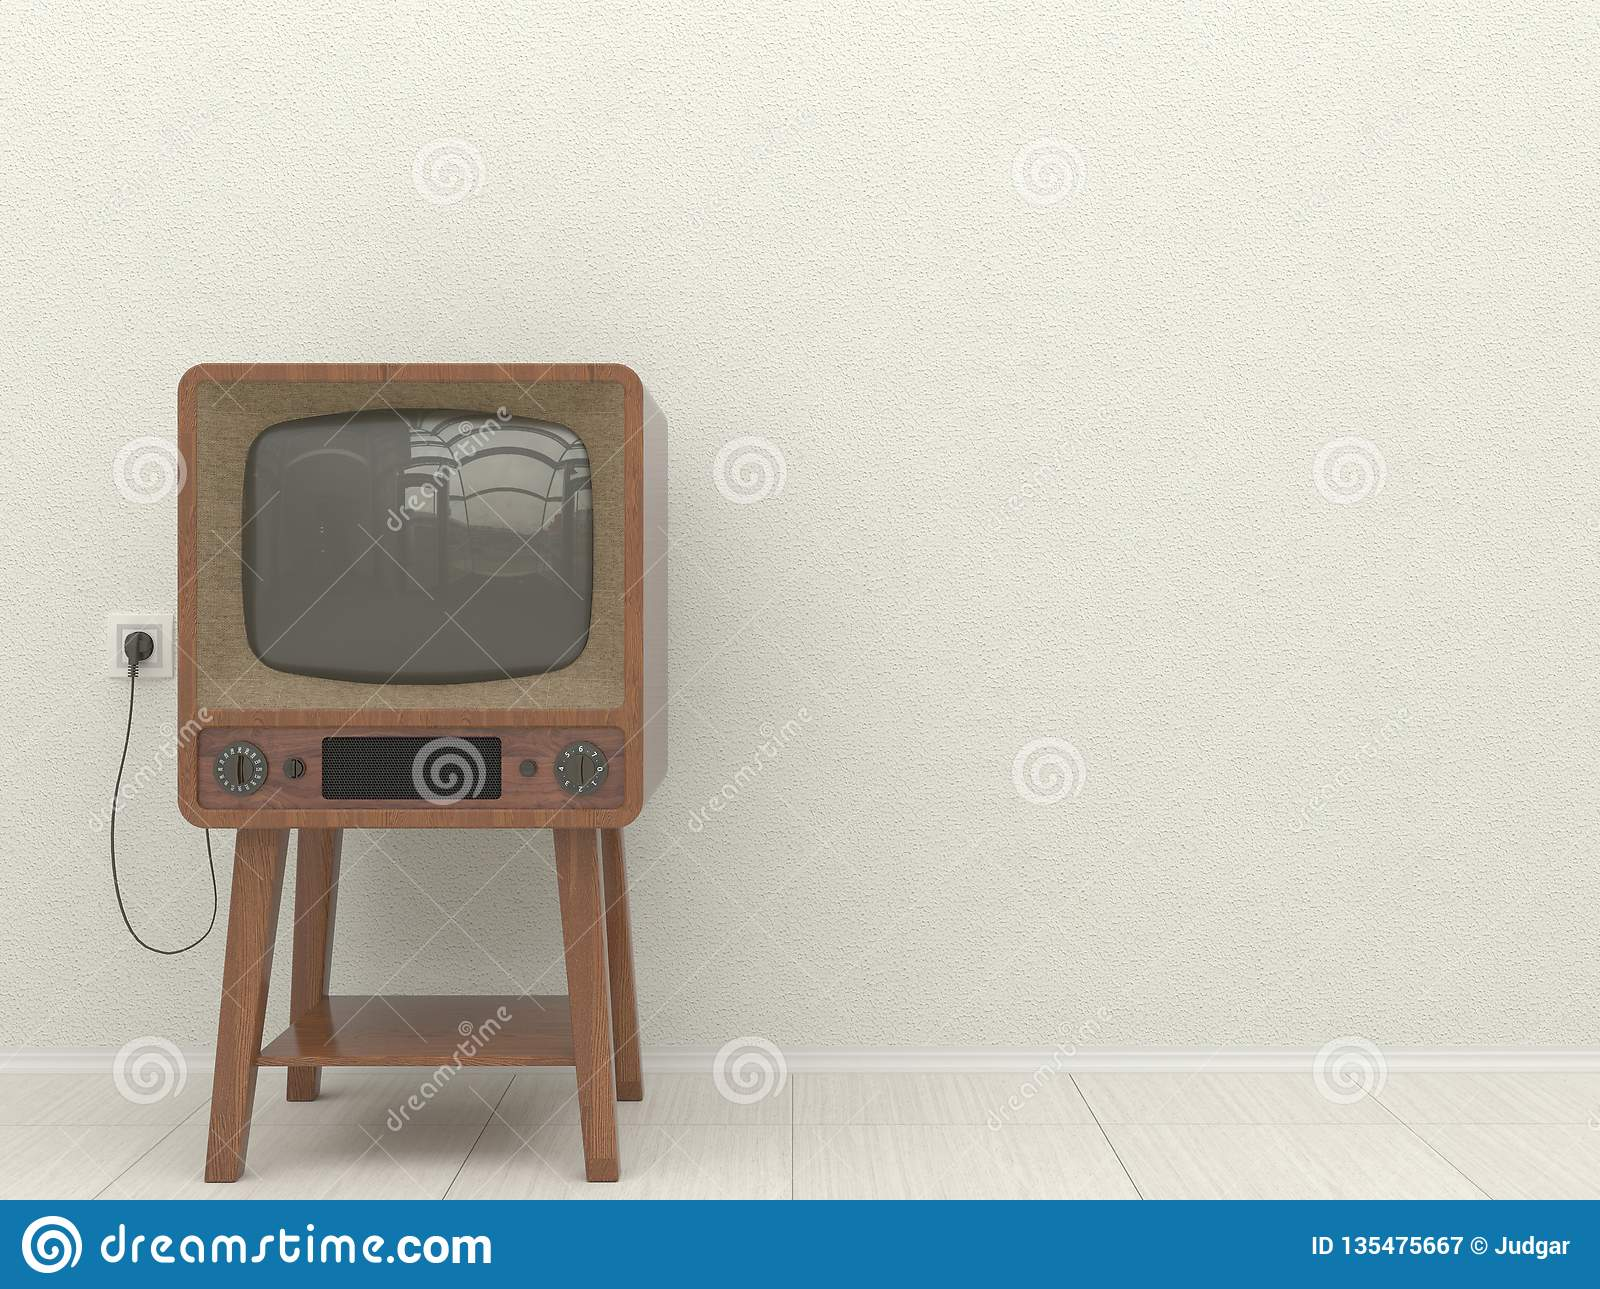 Old retro TV in the interior of a living room on a background of a white plastered wall. Copy space. 3D illustration.